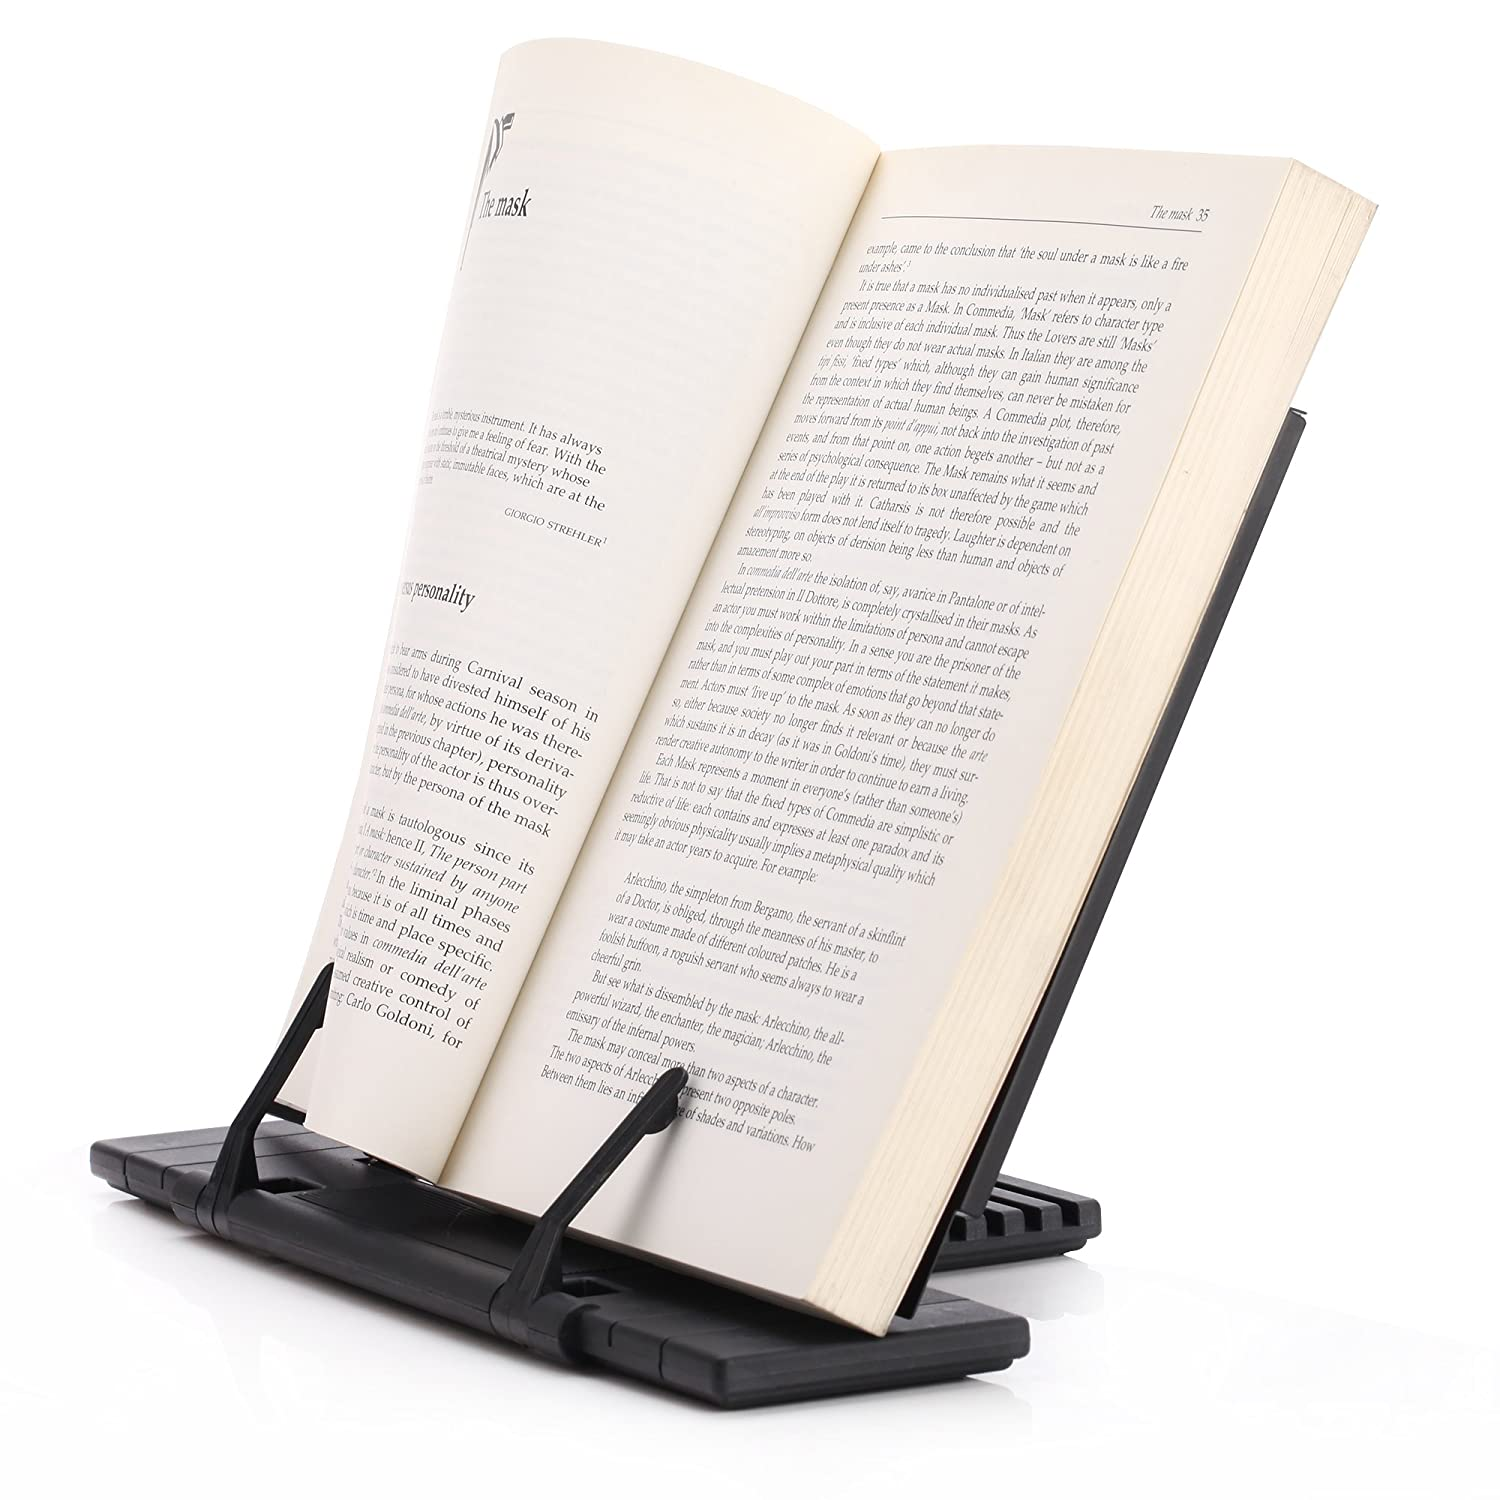 readaeer reading rest cook book document holder stand